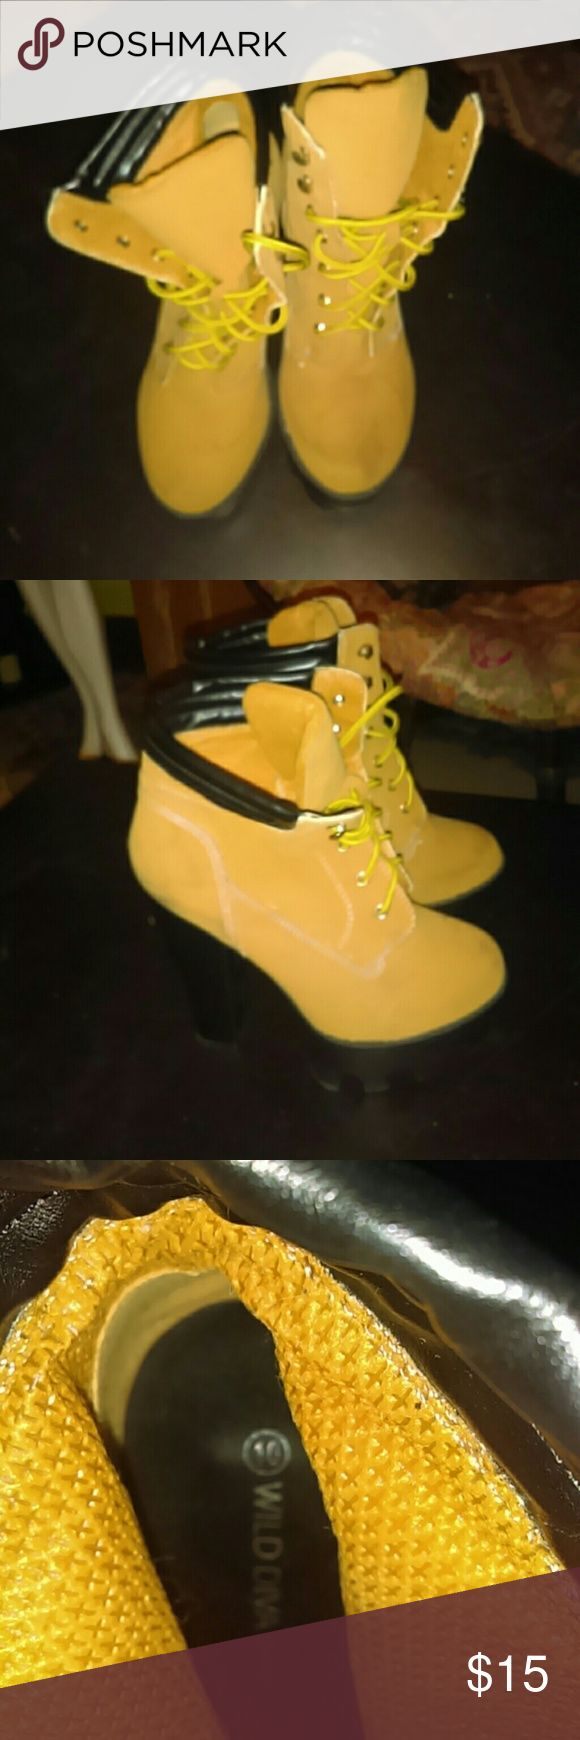 Wild Diva Women's boot stilettos Wild Diva Women's boot timberland style  stilettos size 10 awesome shoes just too small for me a I've only tried them on once but there is some brown marks and scufs but other than that good condition I'm sure the black mark scufs will be easy to get out wild diva  Shoes Lace Up Boots